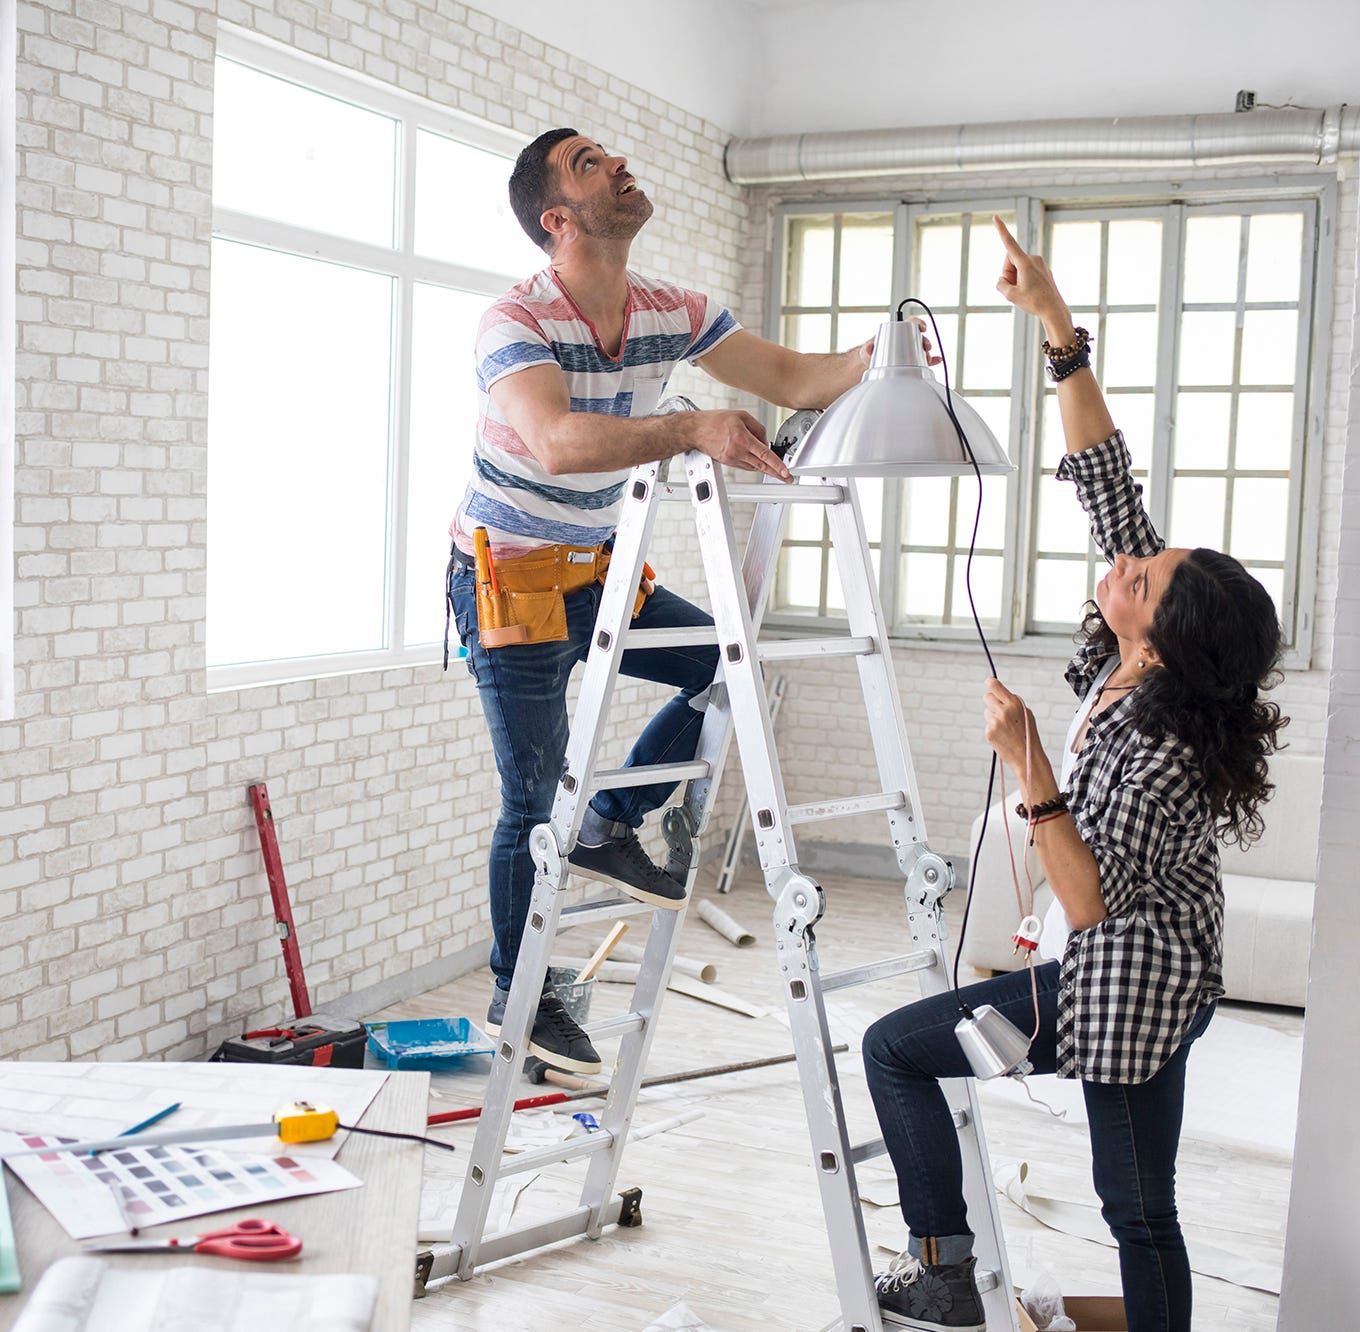 May is National Home Remodeling Month